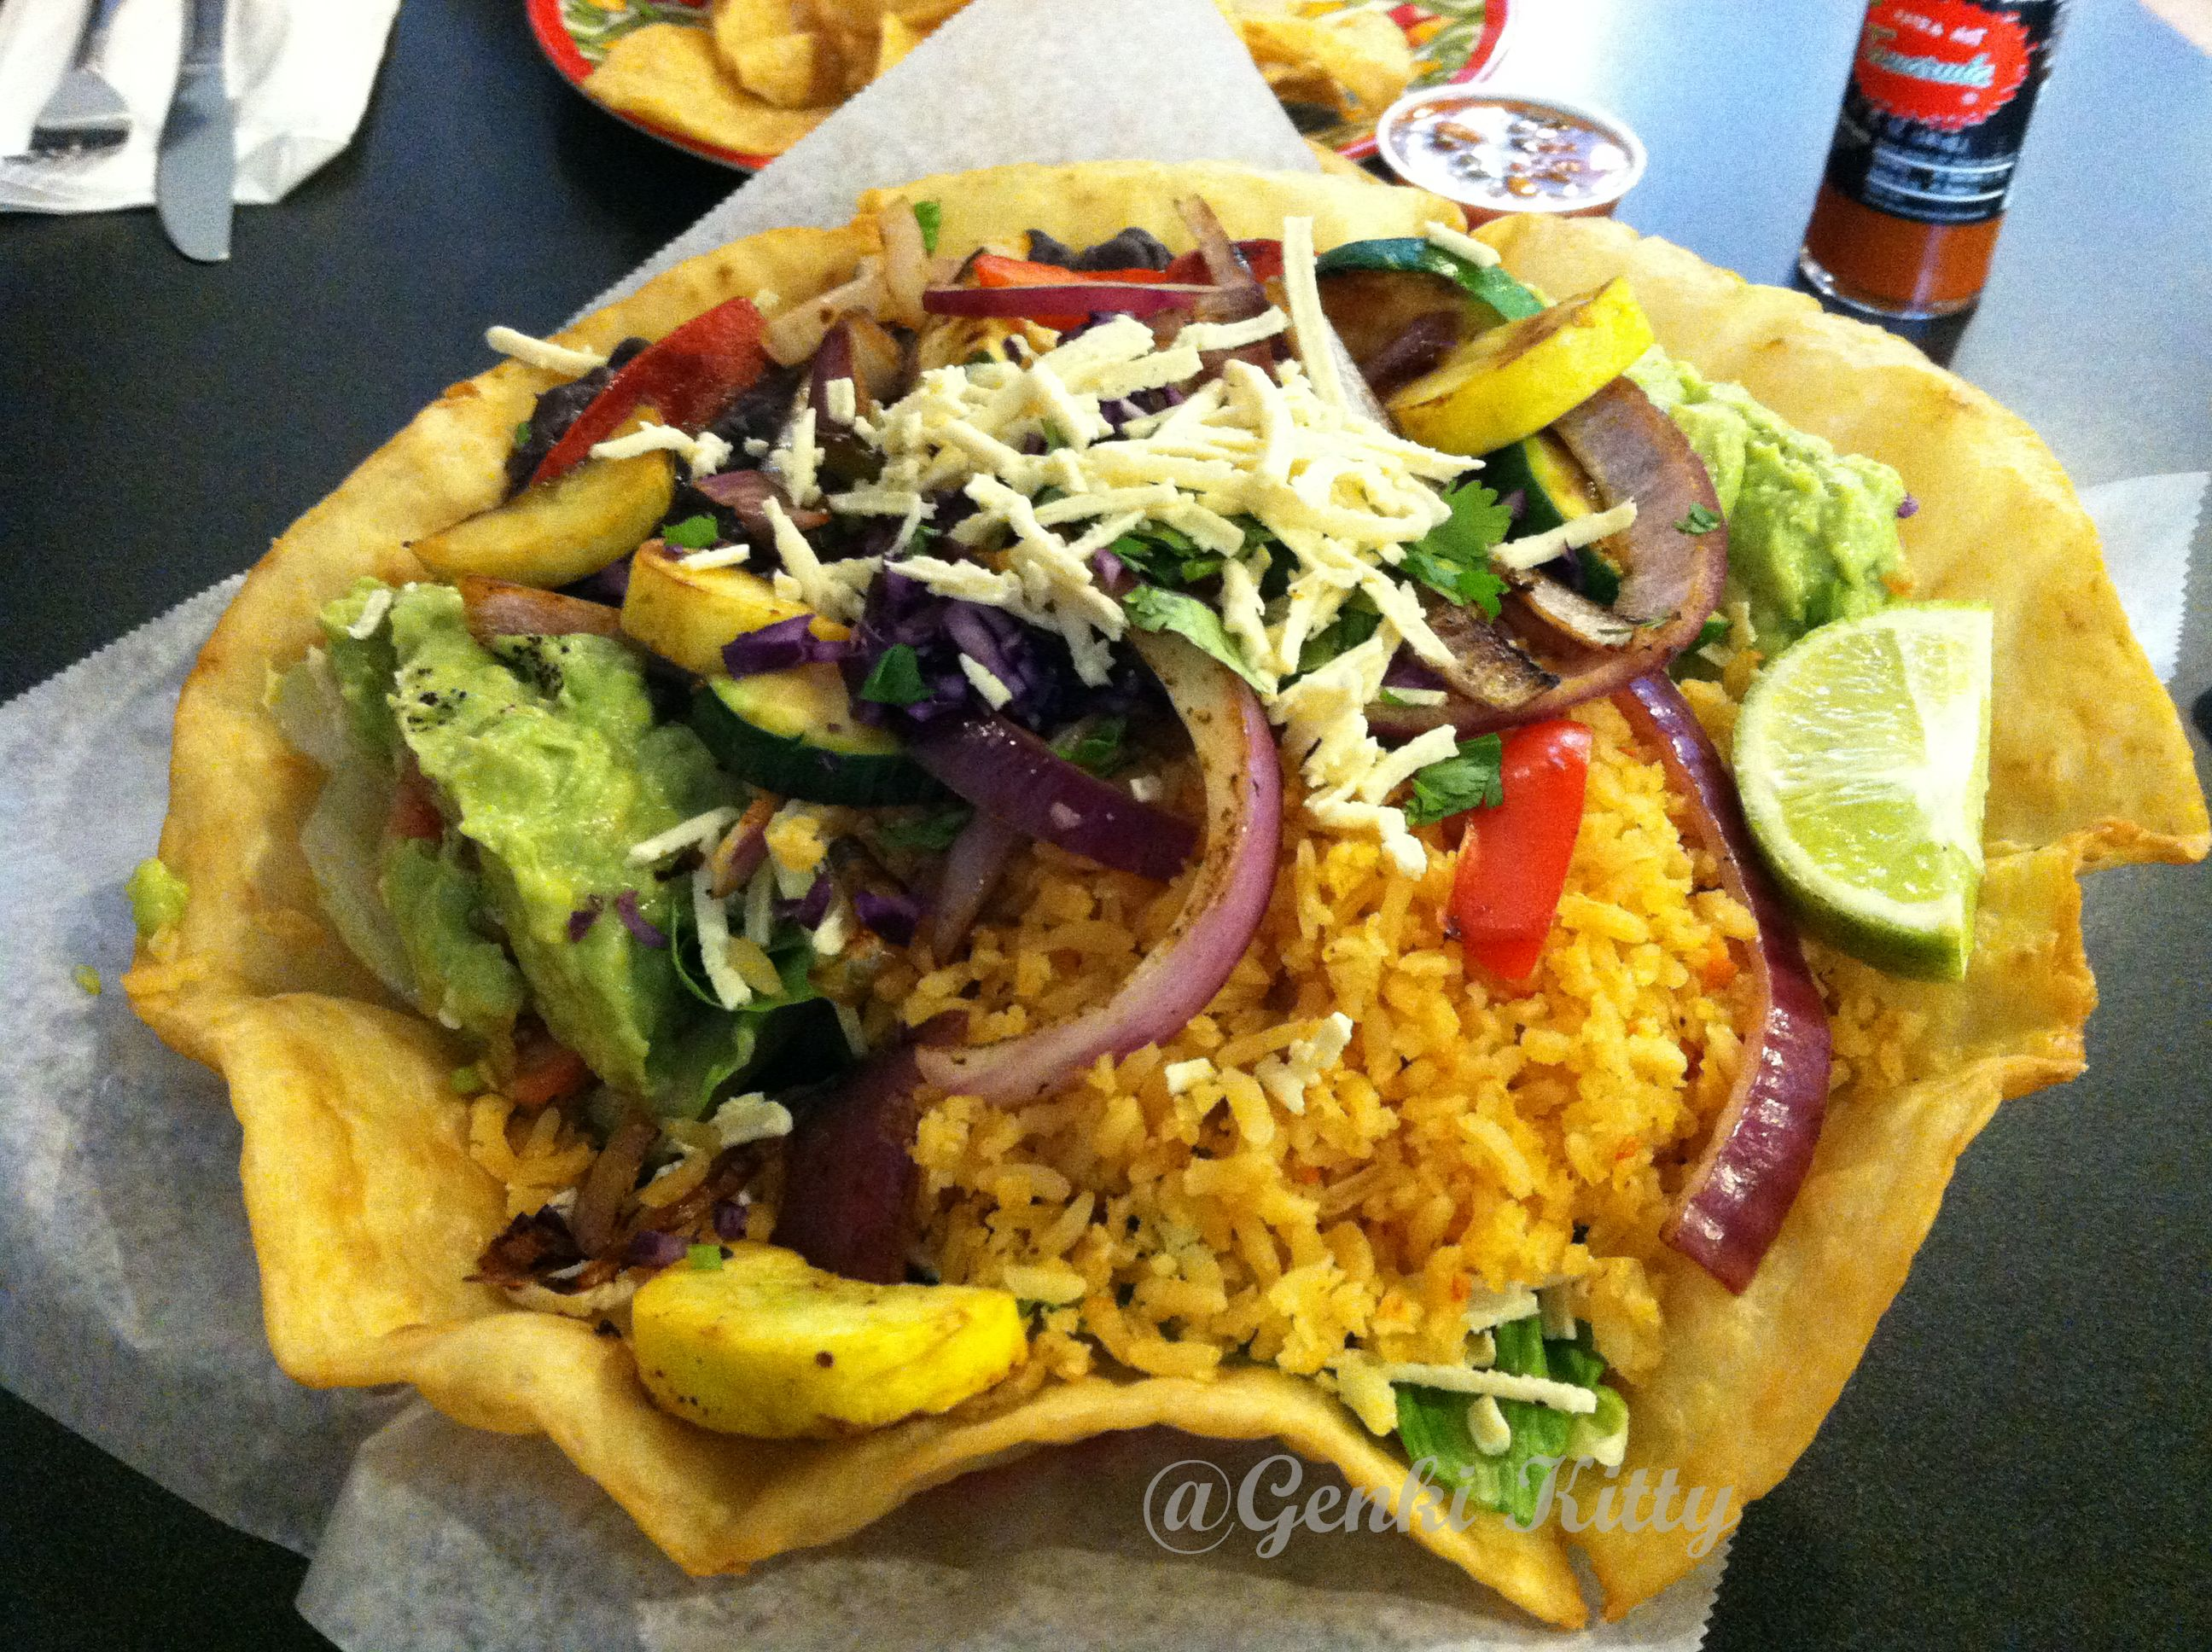 Vegan Taco Salad From Mucho Mas In La Porte Indiana Yes Thats